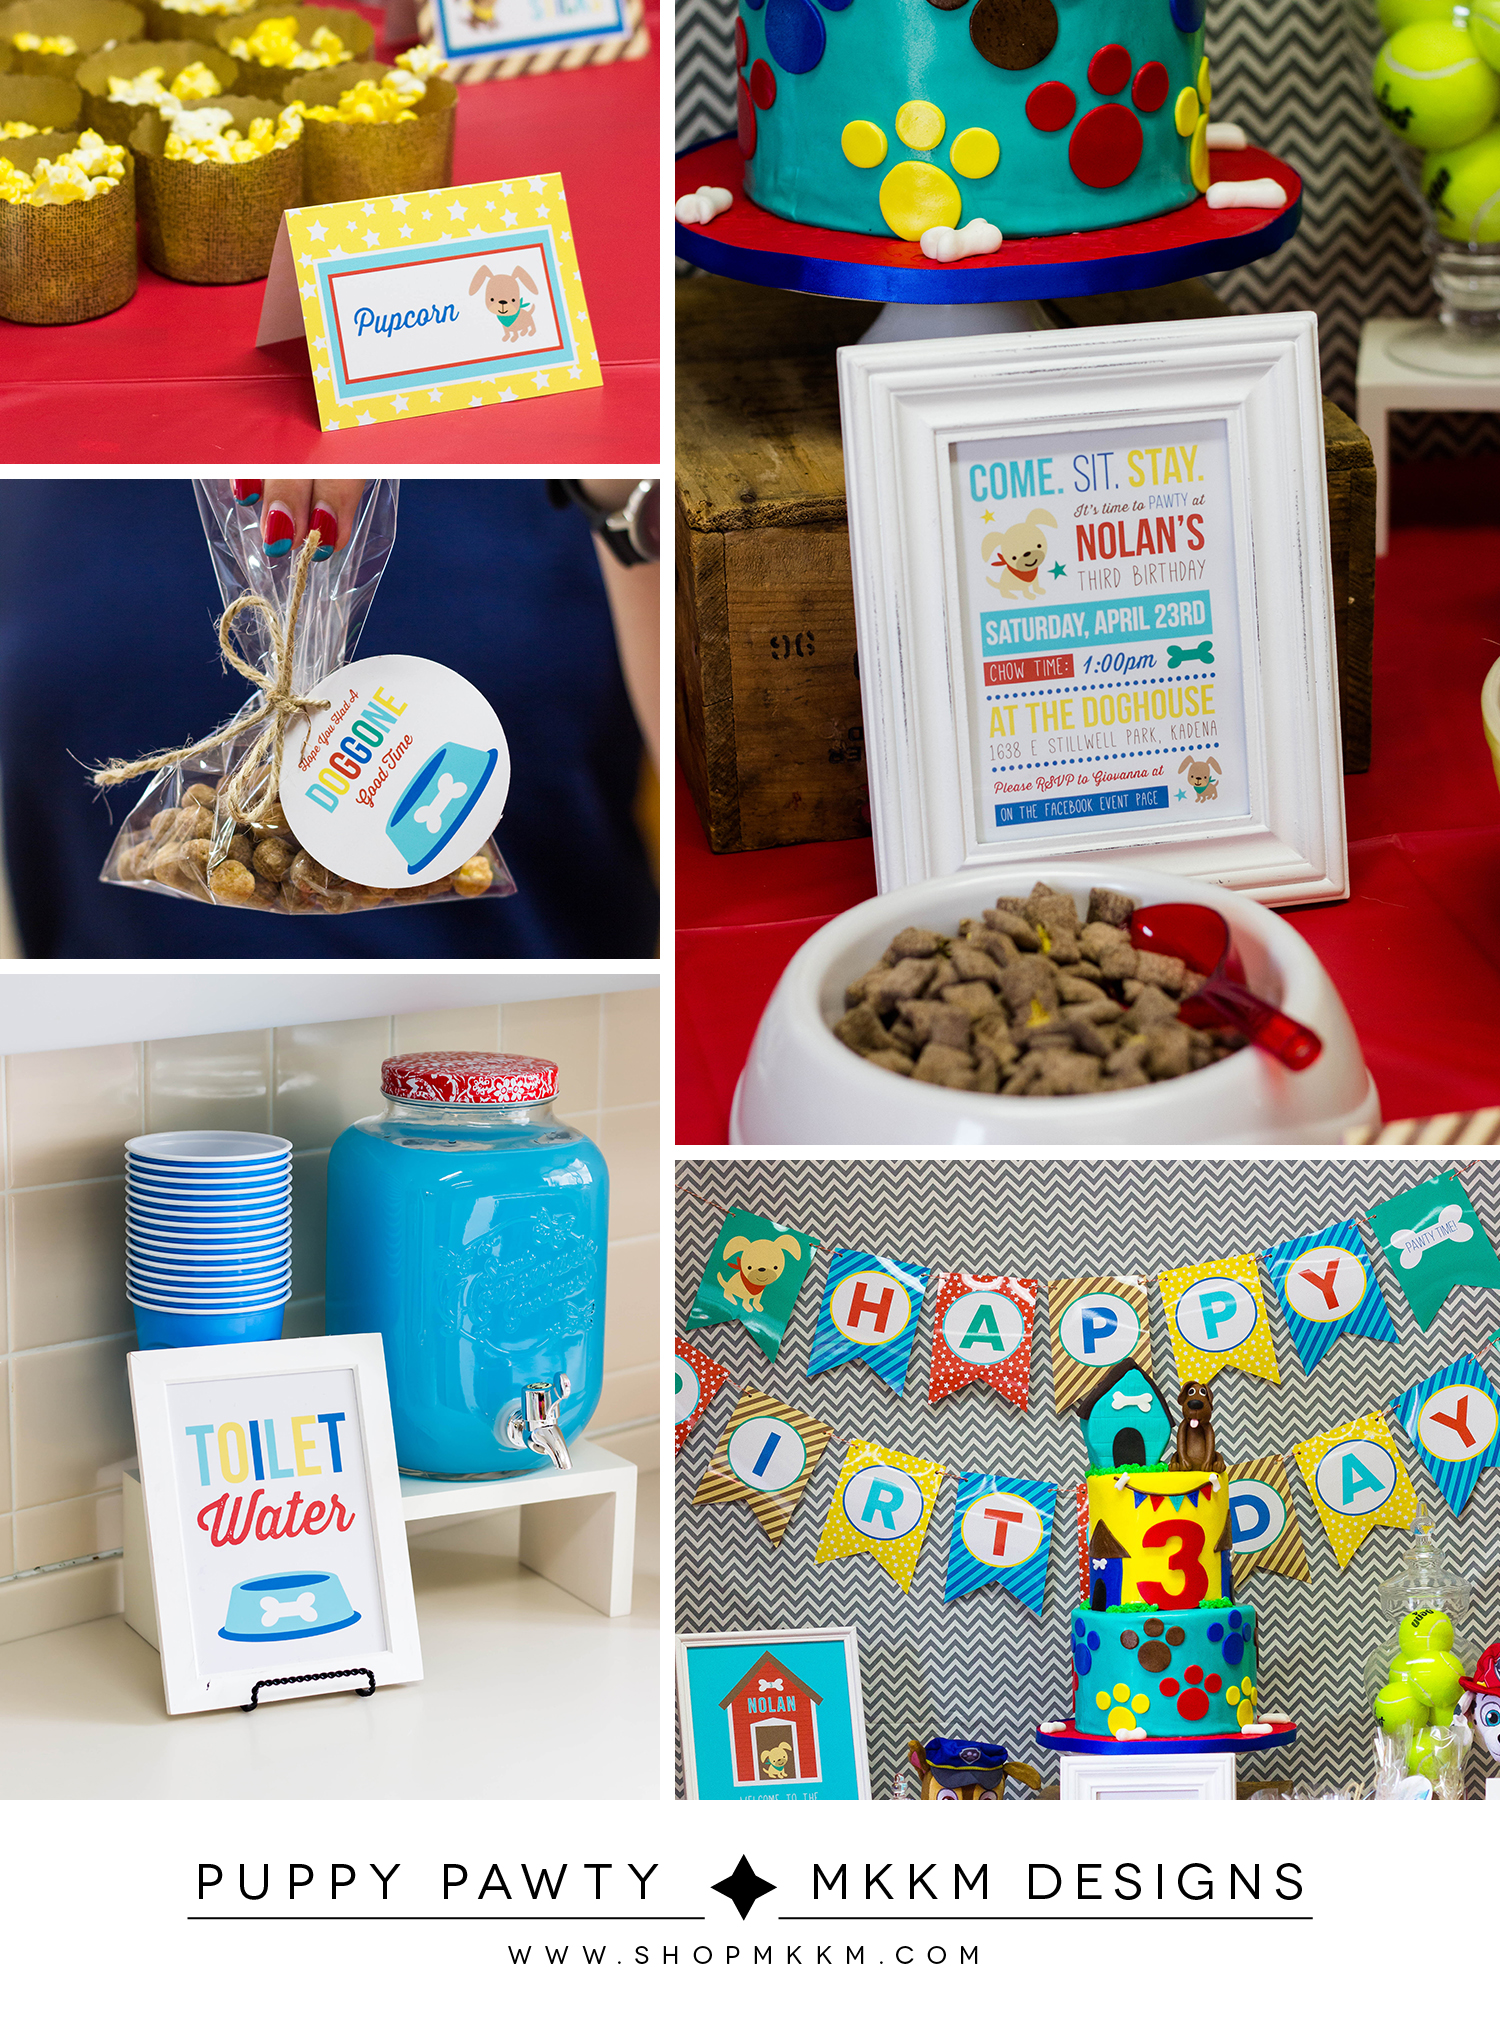 Puppy Pawty decor and free printable favor tags from MKKM Designs